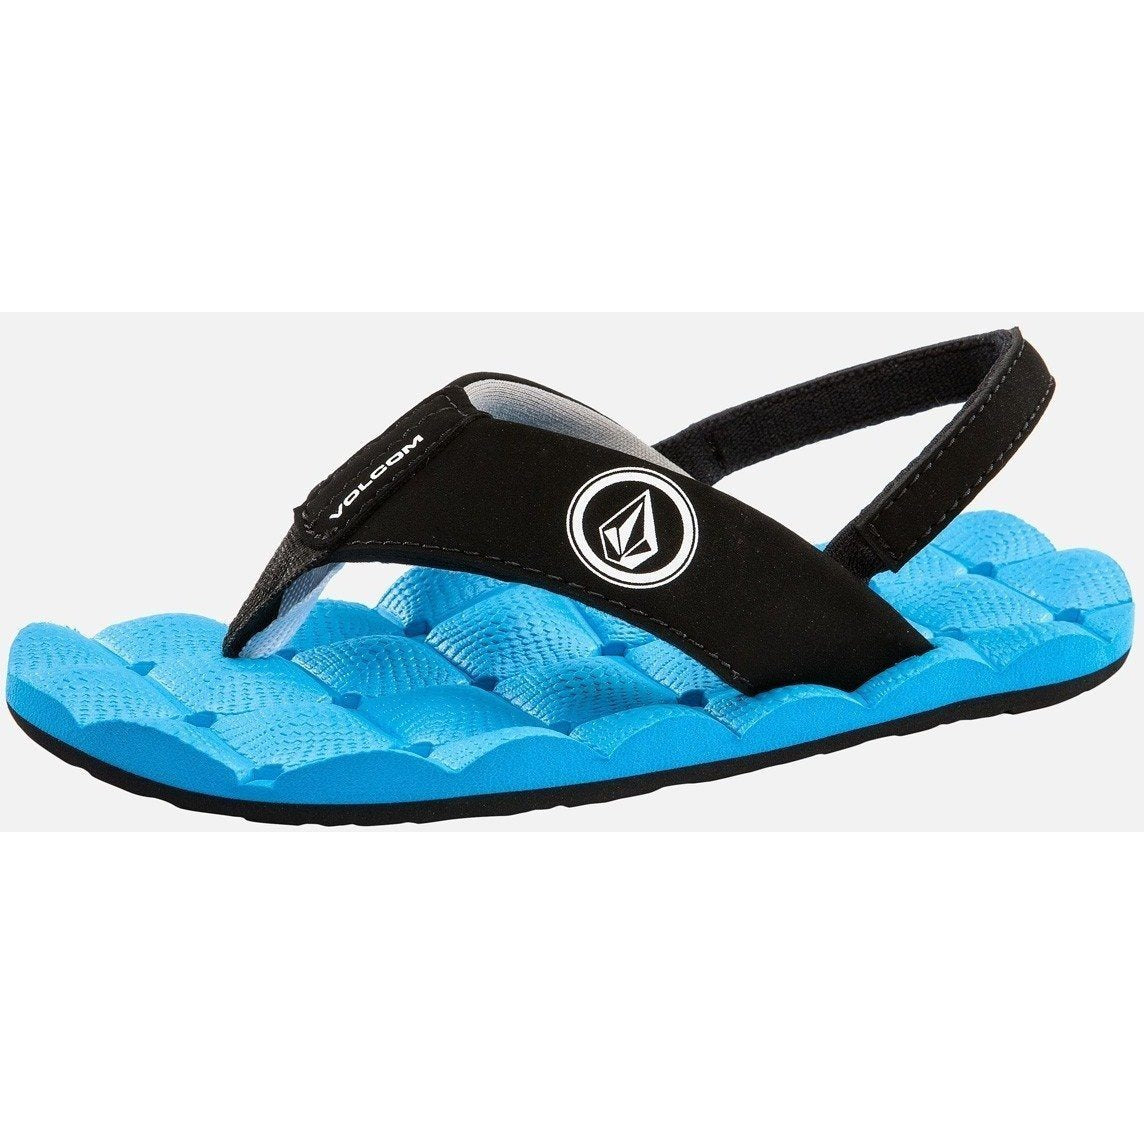 Volcom Boys 2-7 Recliner Sandals - 88 Gear